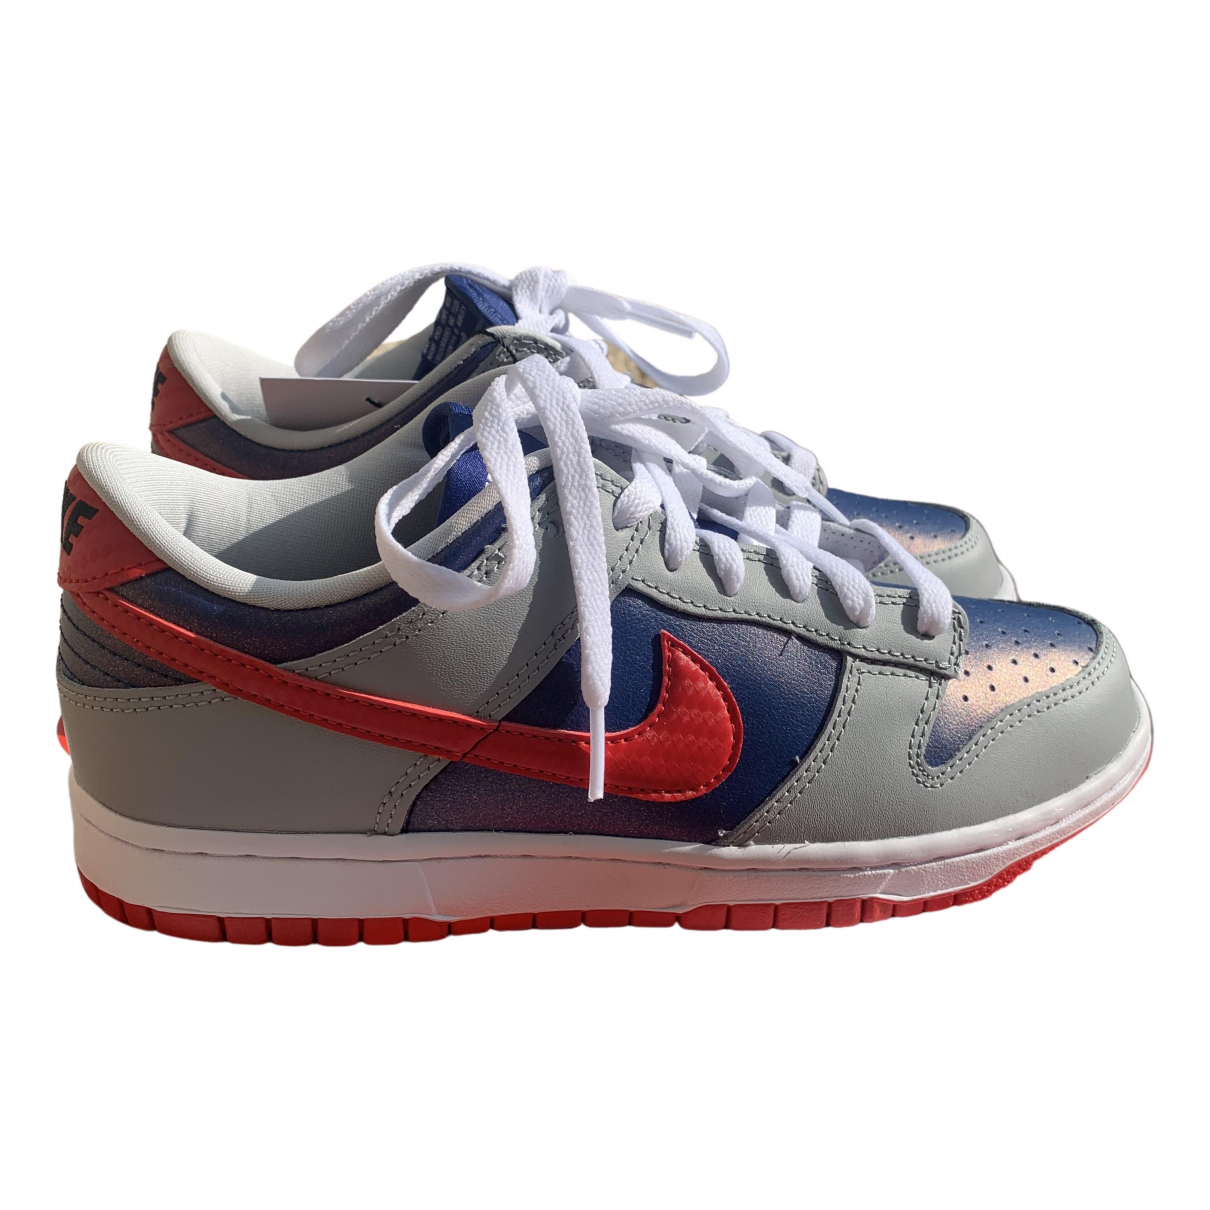 Nike SB Dunk  Multicolour Leather Trainers for Women 7 US